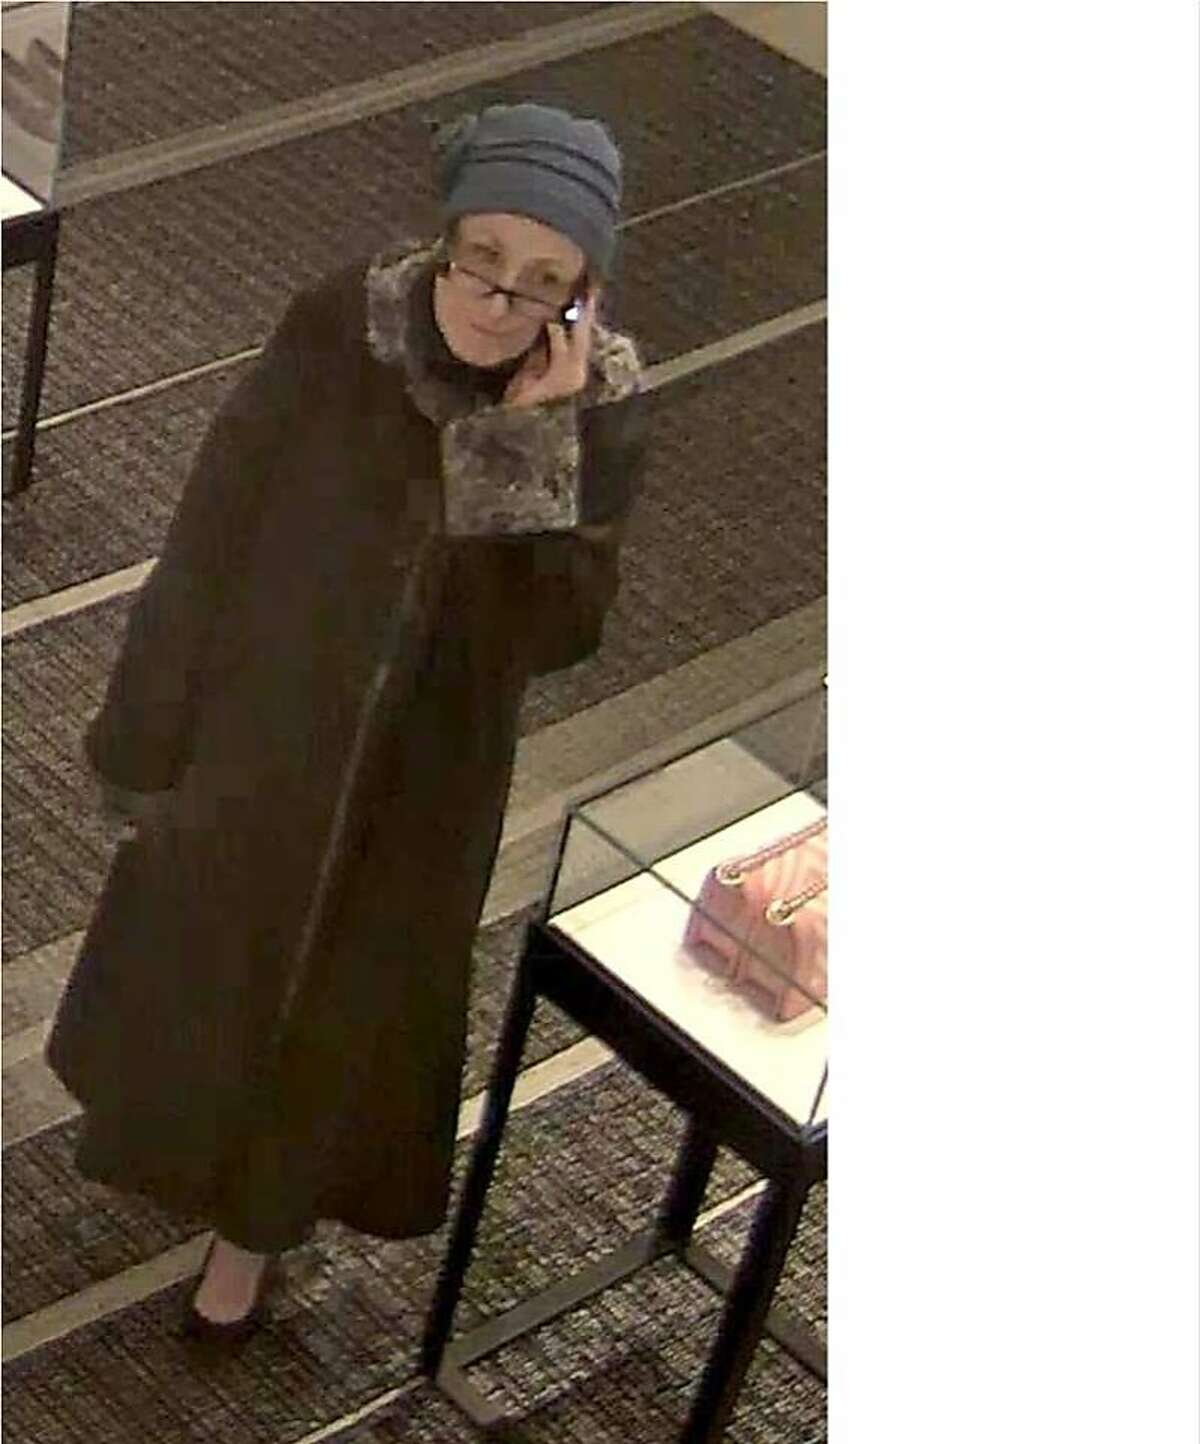 San Mateo County Sheriff's deputies are investigating the identity of a woman who steals the wallets of women who resemble her.